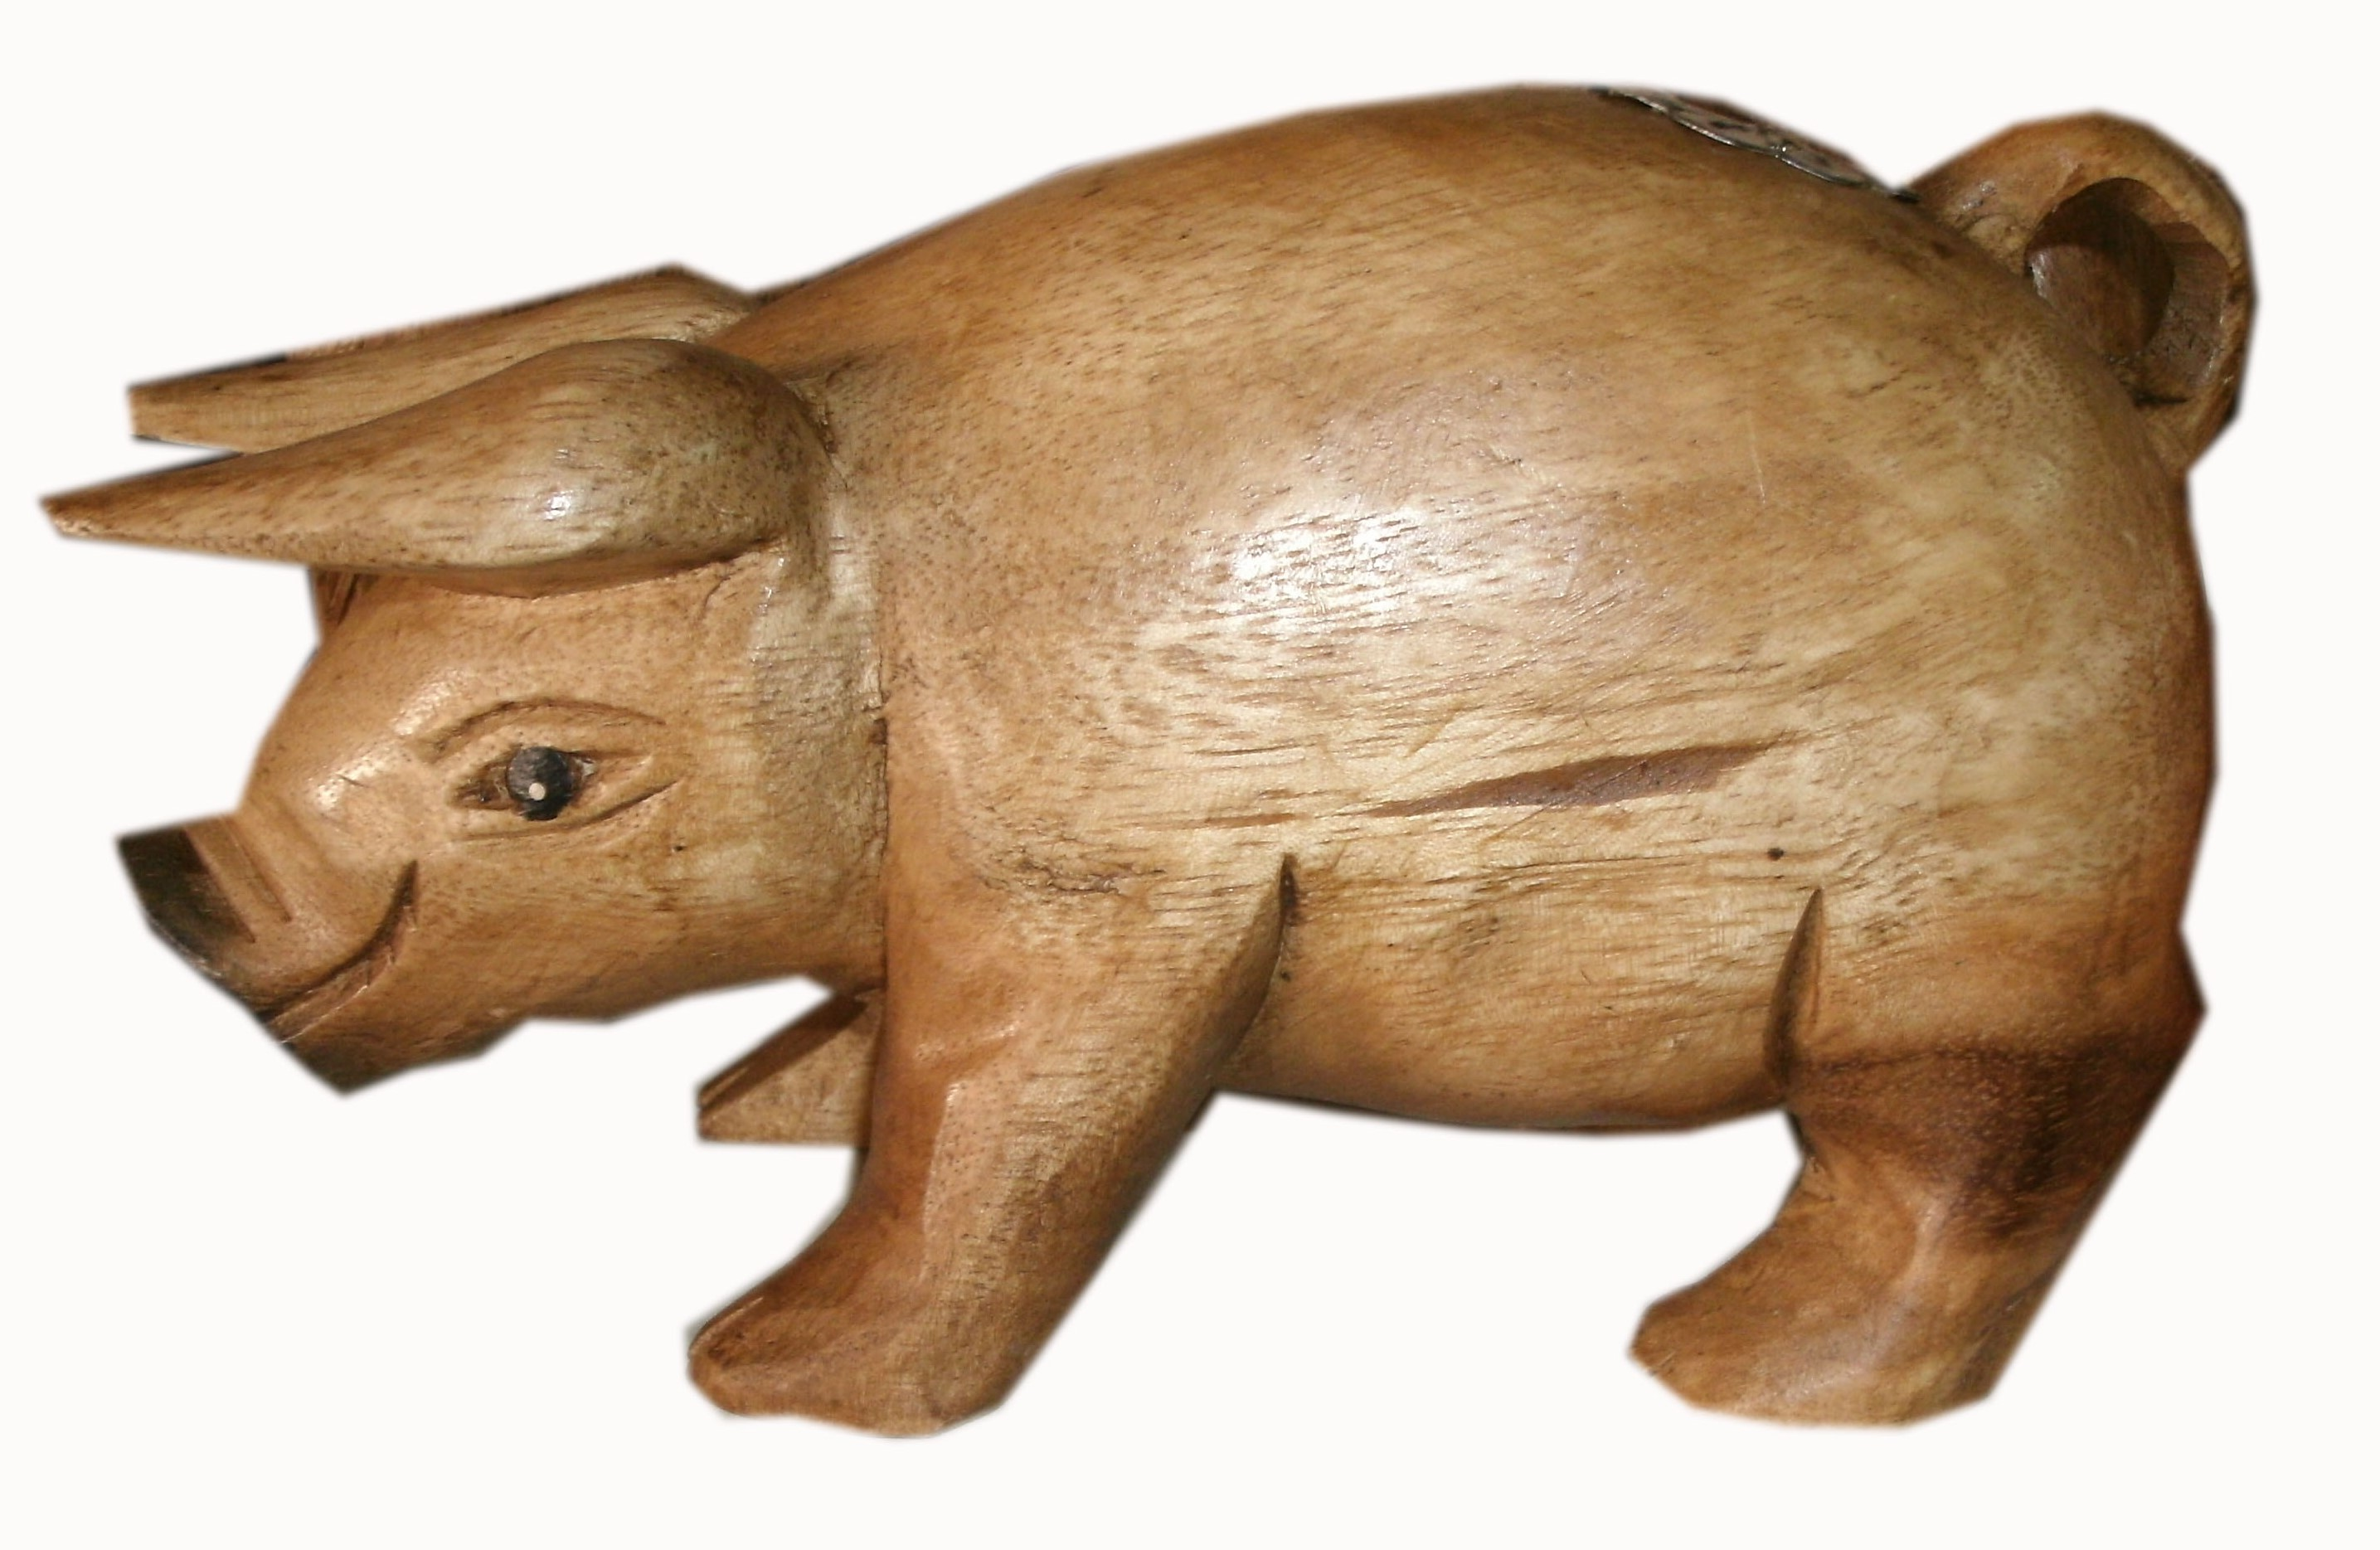 Wood pig figurine